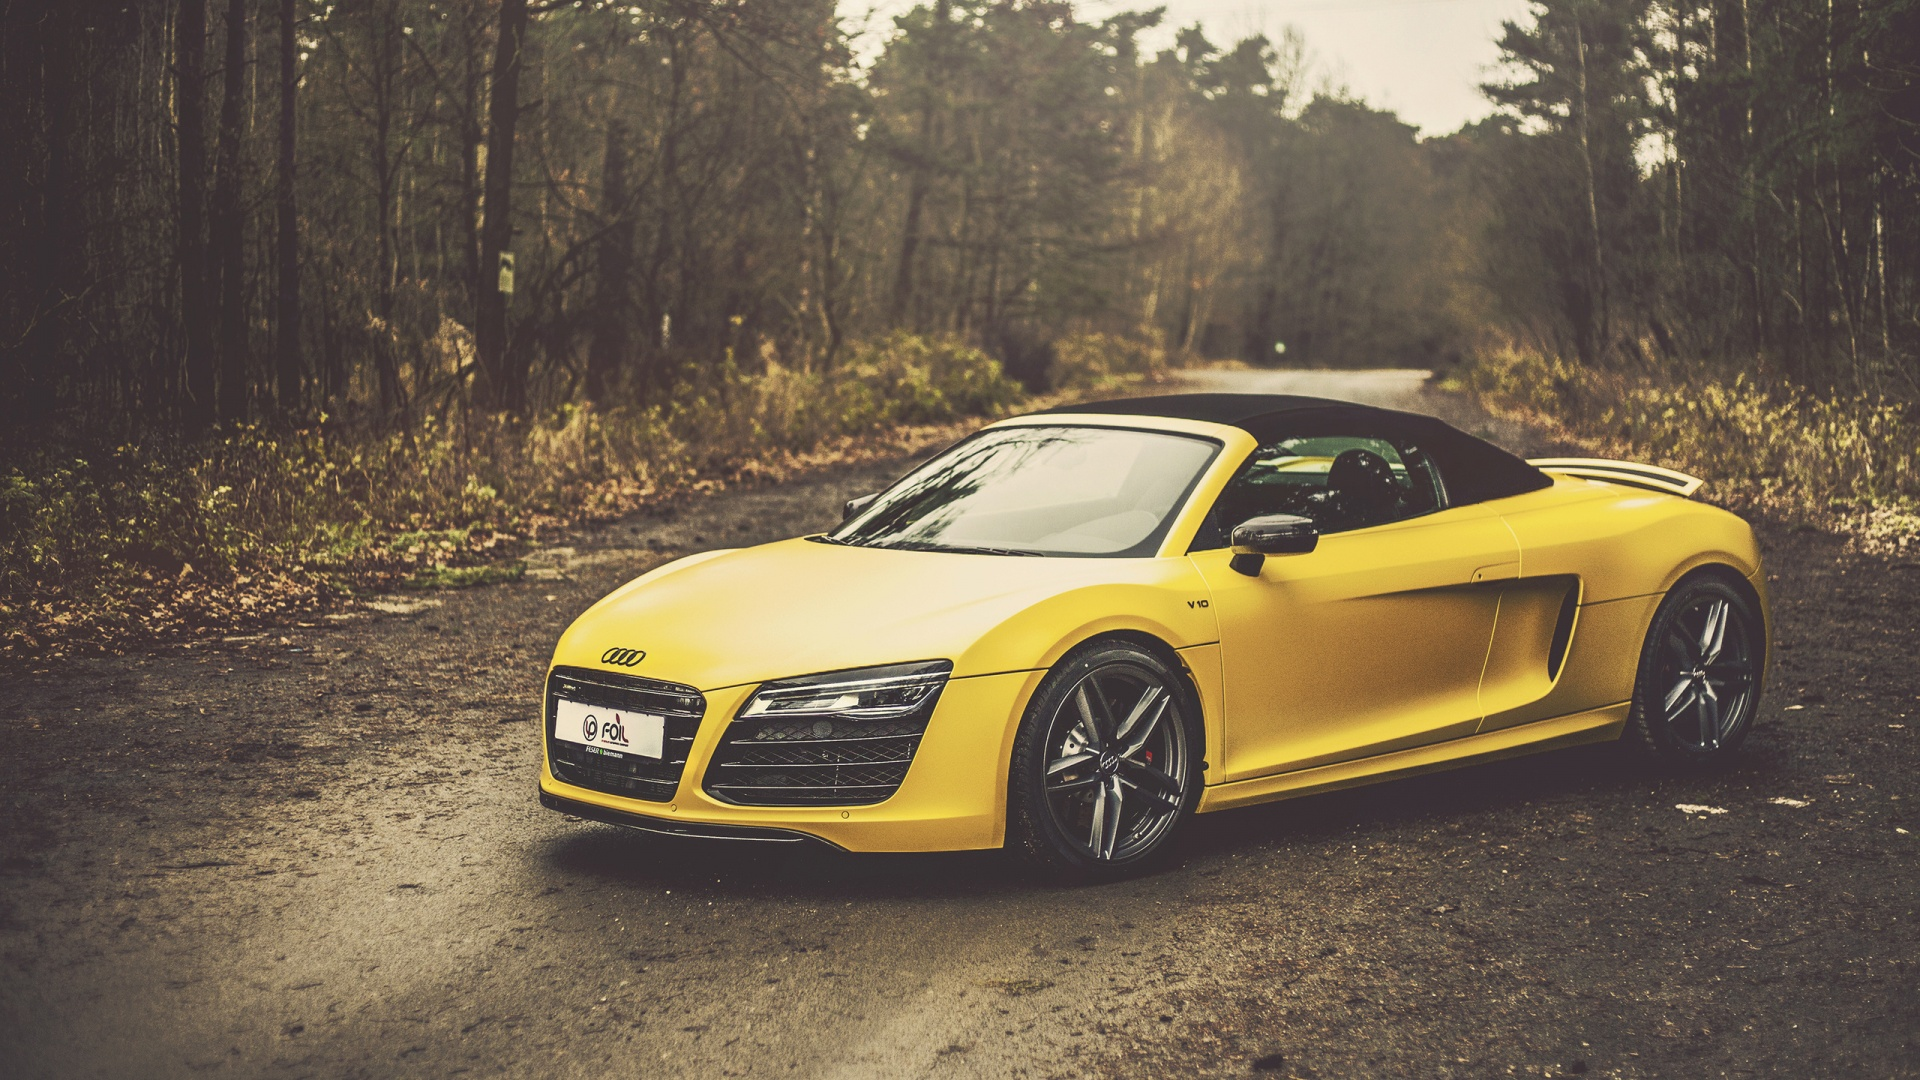 yellow audi r8 v10 spyder wallpapers - 1920x1080 - 853664